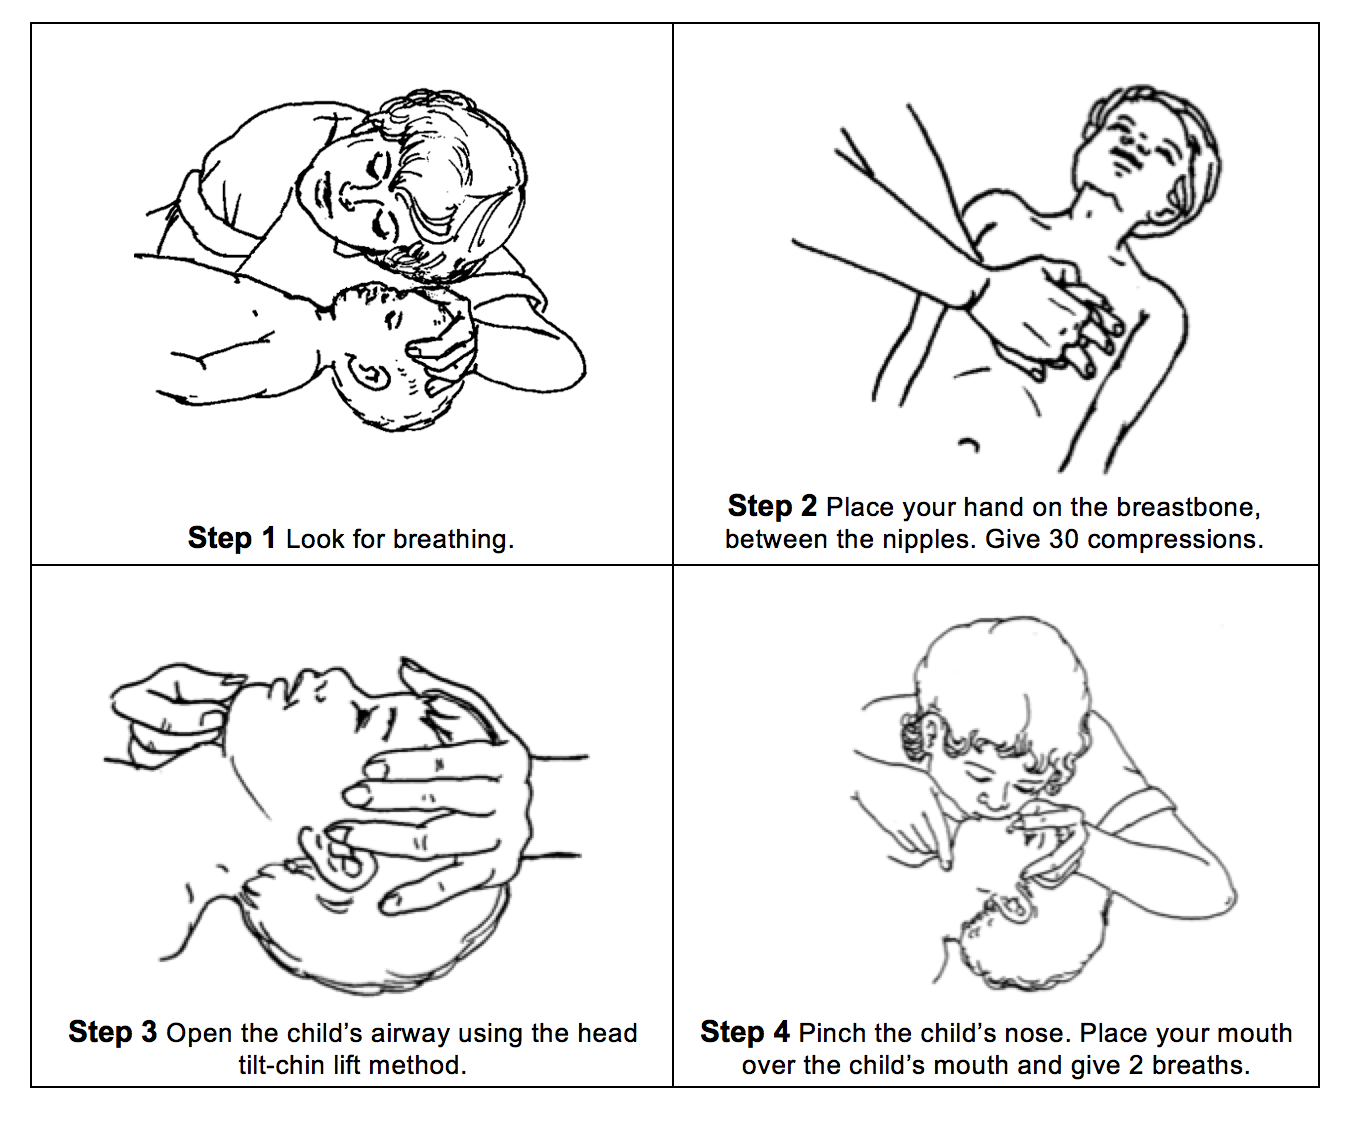 steps to performing cpr